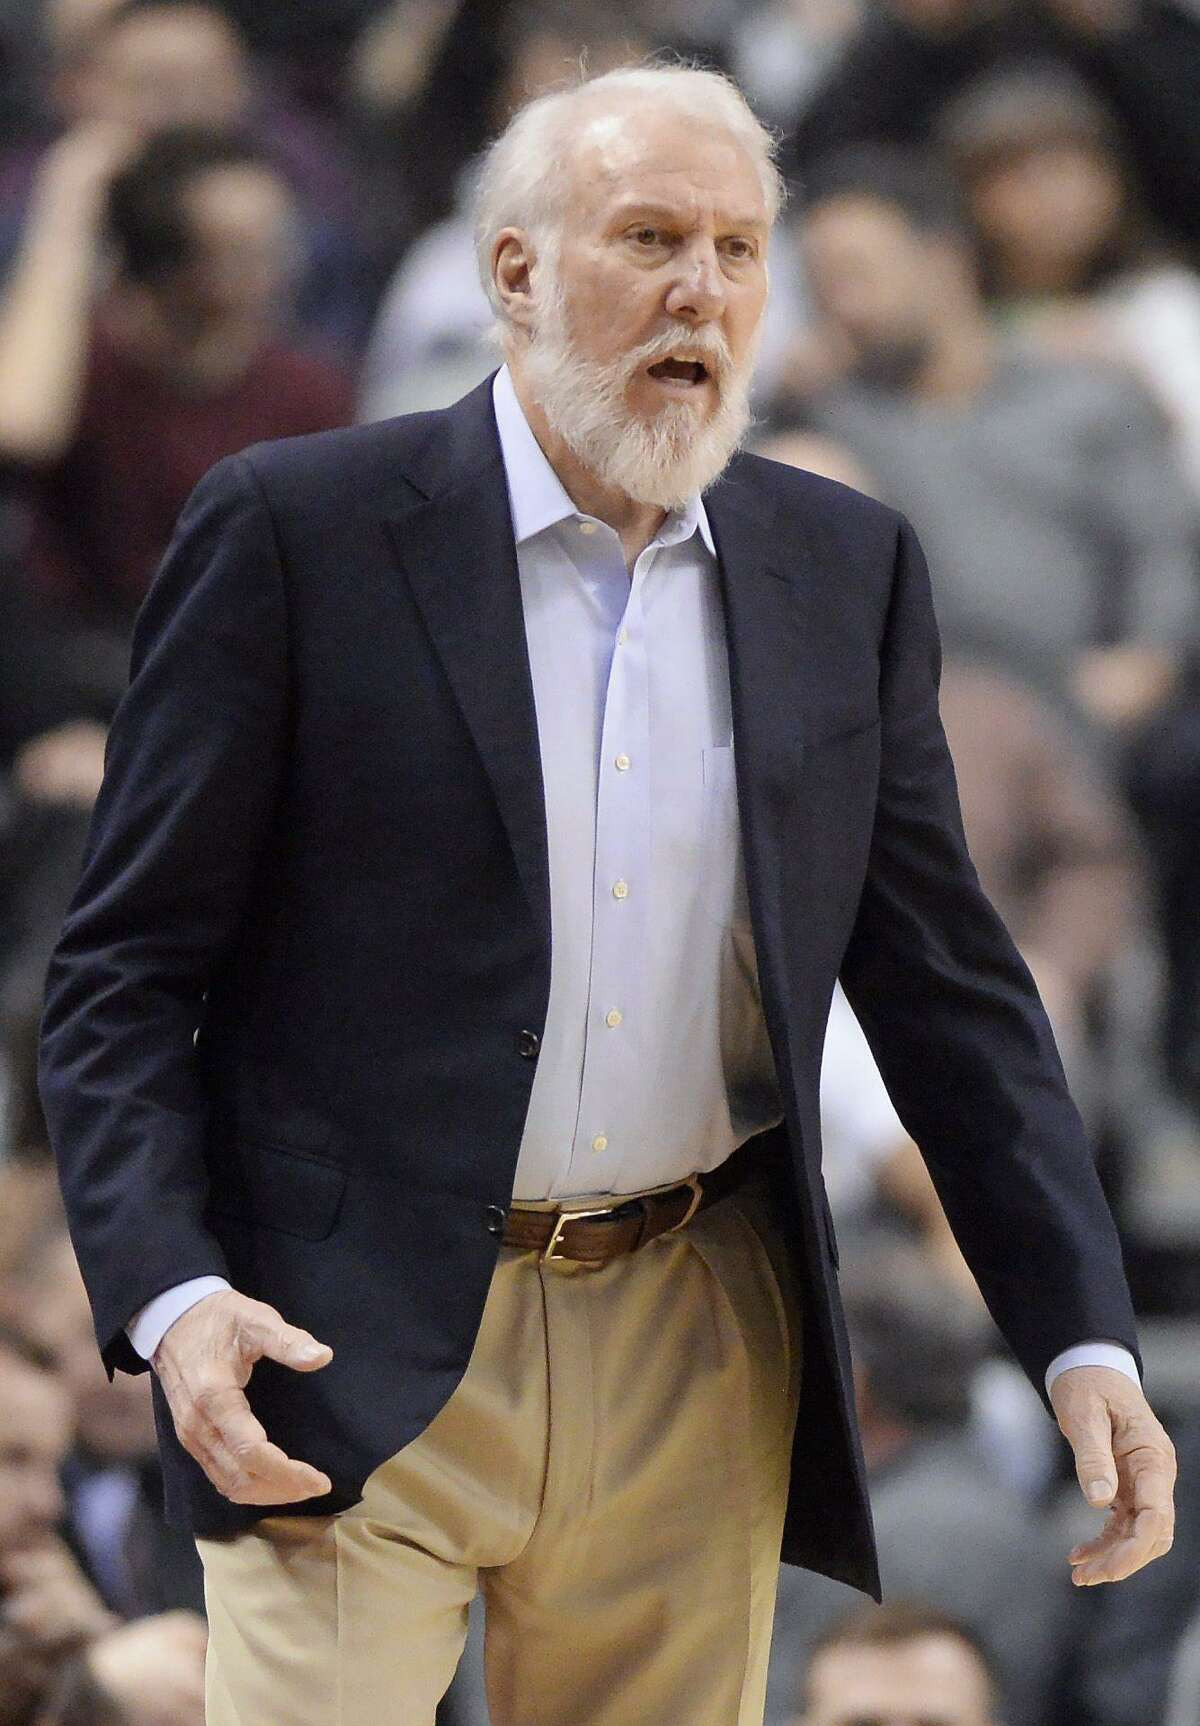 Spurs coach Gregg Popovich watches his team during first half against the Raptors on Jan. 24, 2017, in Toronto.